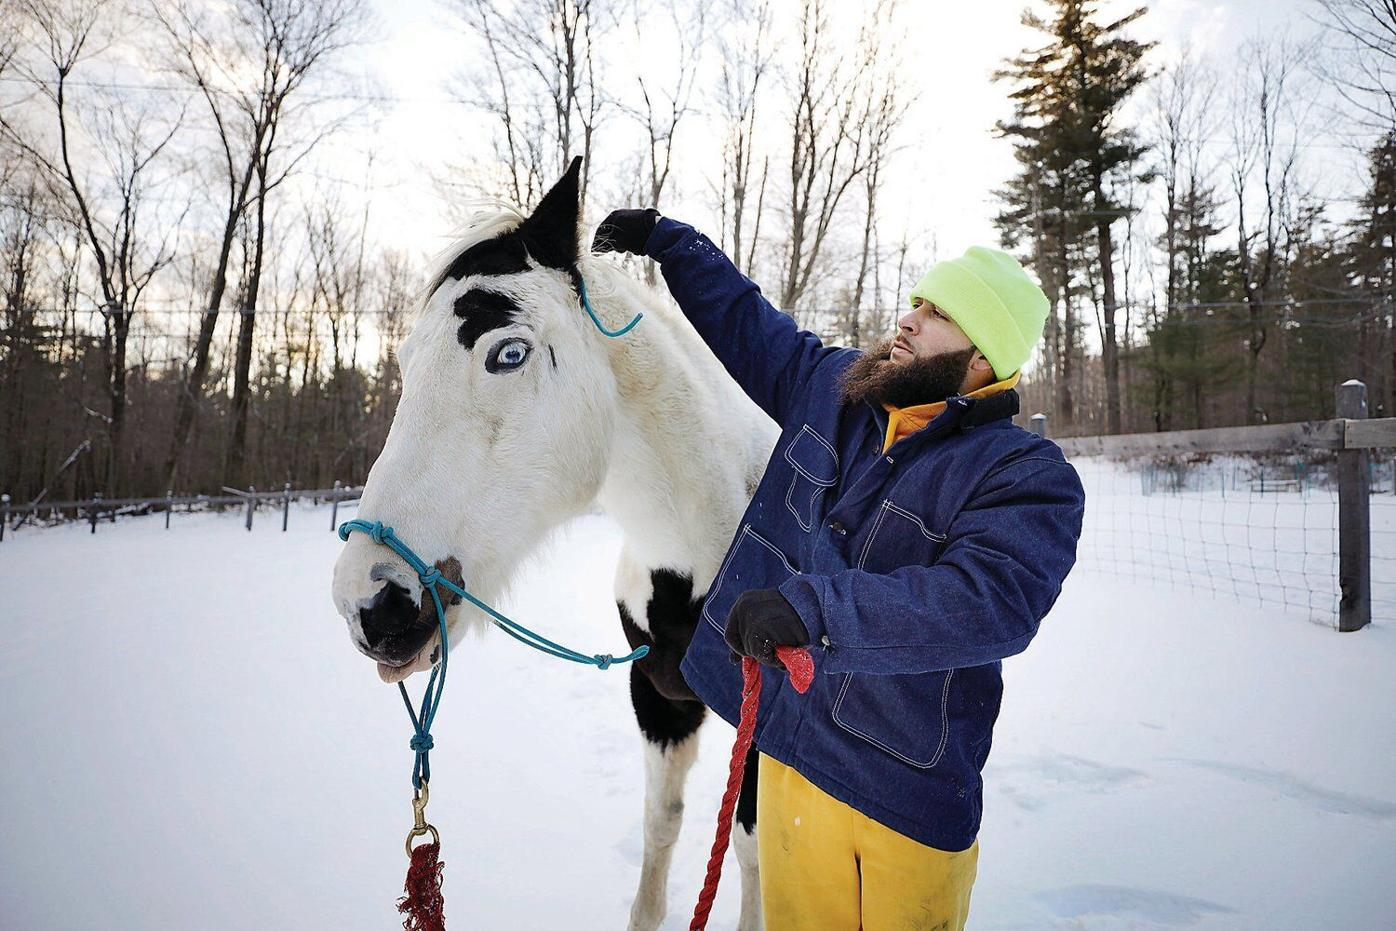 Horses at Richmond ranch help strengthen inmates who are facing release